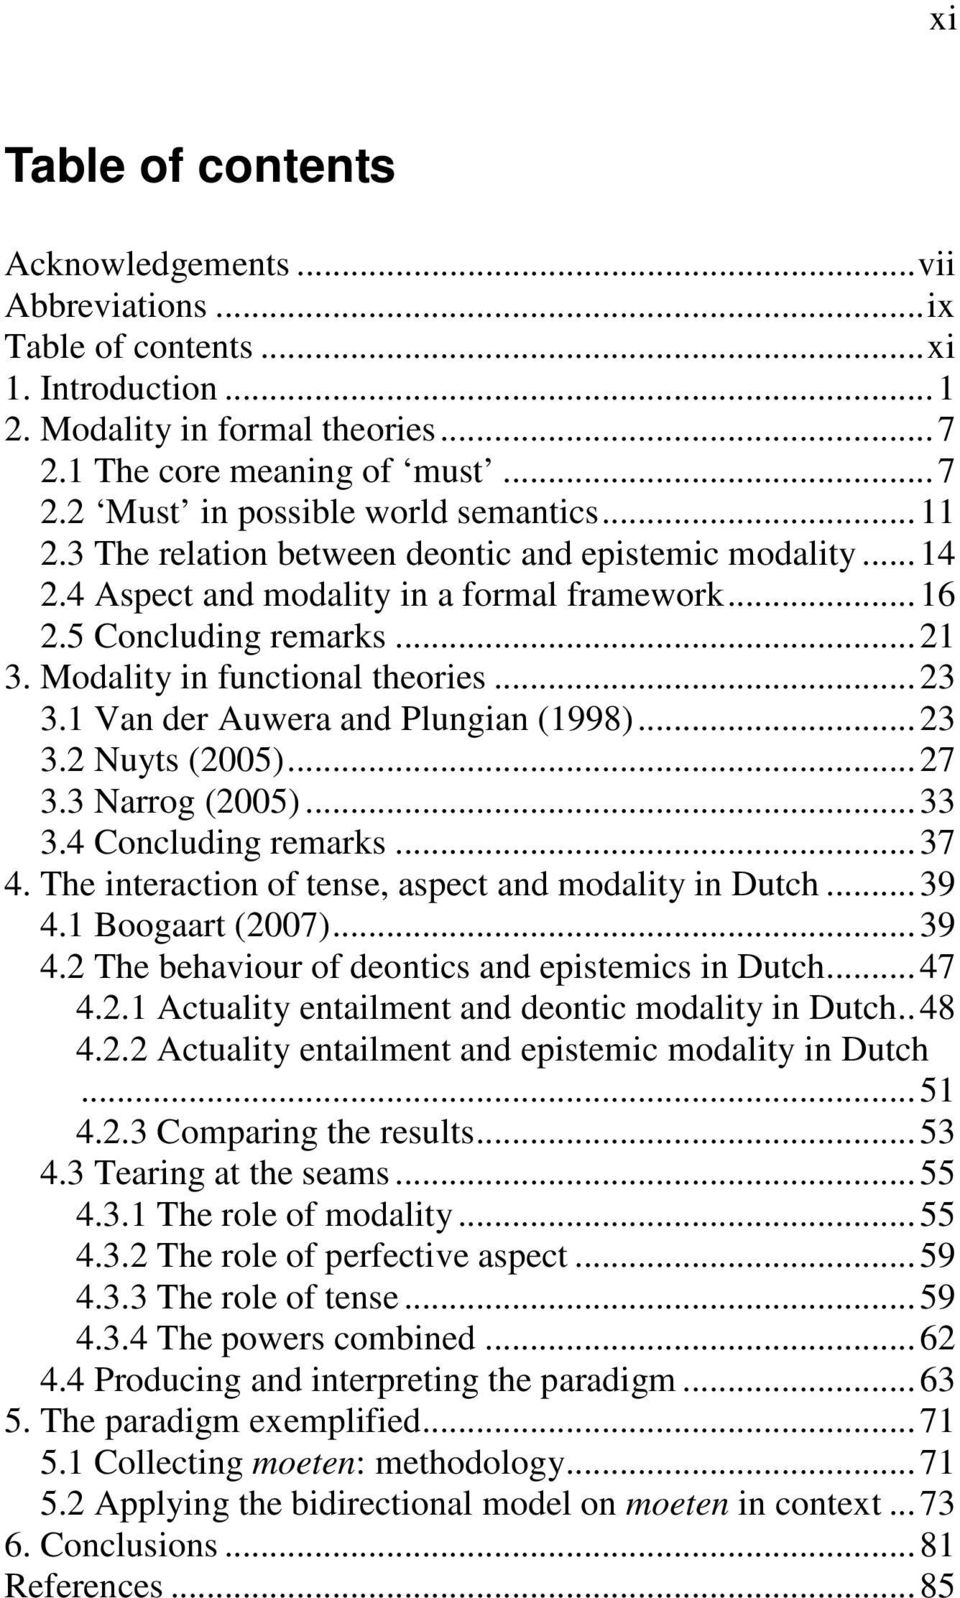 1 Van der Auwera and Plungian (1998)...23 3.2 Nuyts (2005)...27 3.3 Narrog (2005)...33 3.4 Concluding remarks...37 4. The interaction of tense, aspect and modality in Dutch...39 4.1 Boogaart (2007).